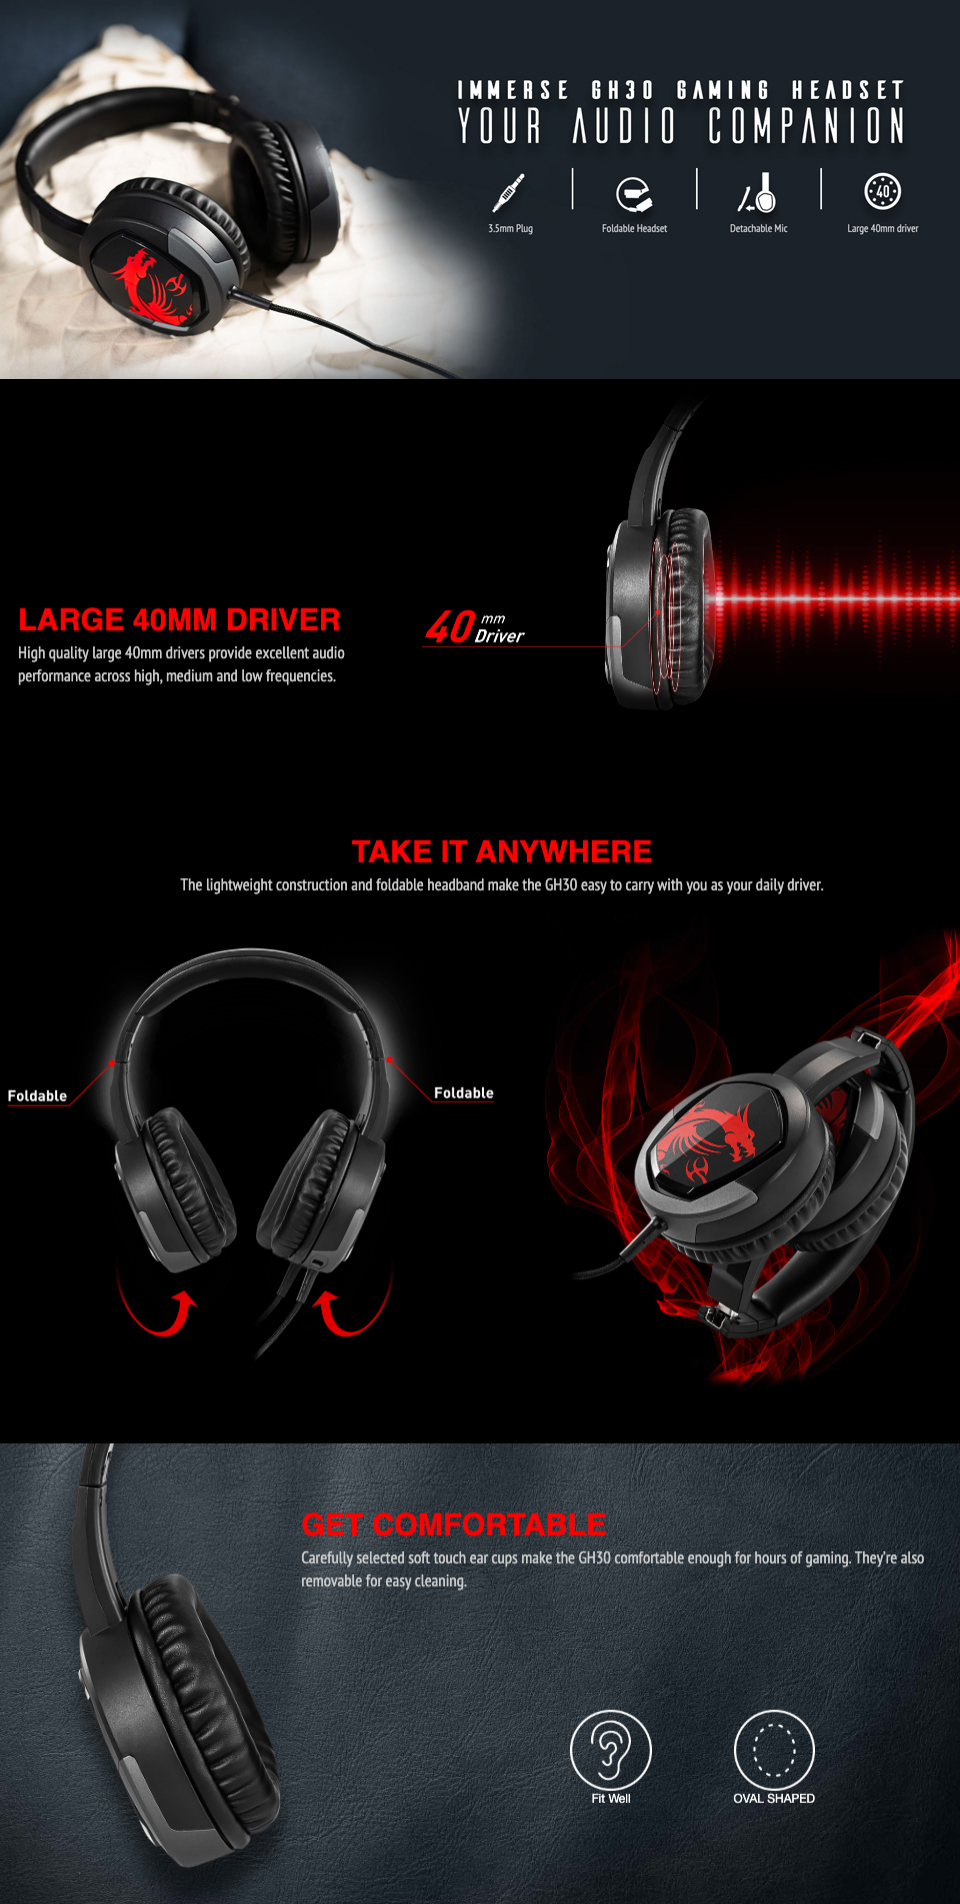 MSI Immerse GH30 Gaming Headset Foldable Headband with Detachable Microphone